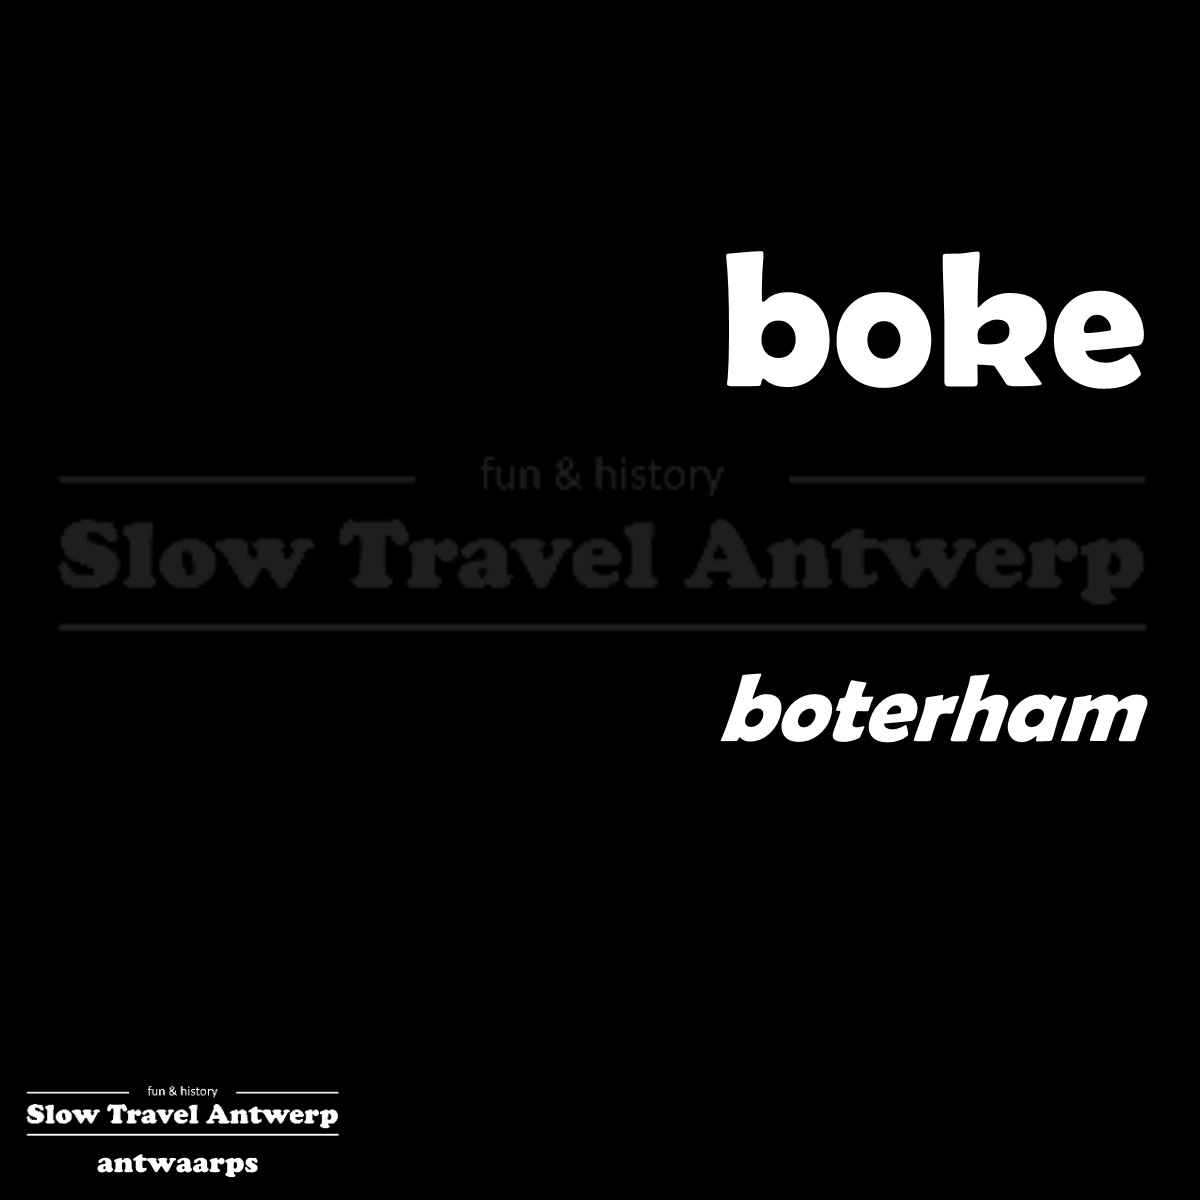 boke – boterham – slice of bread